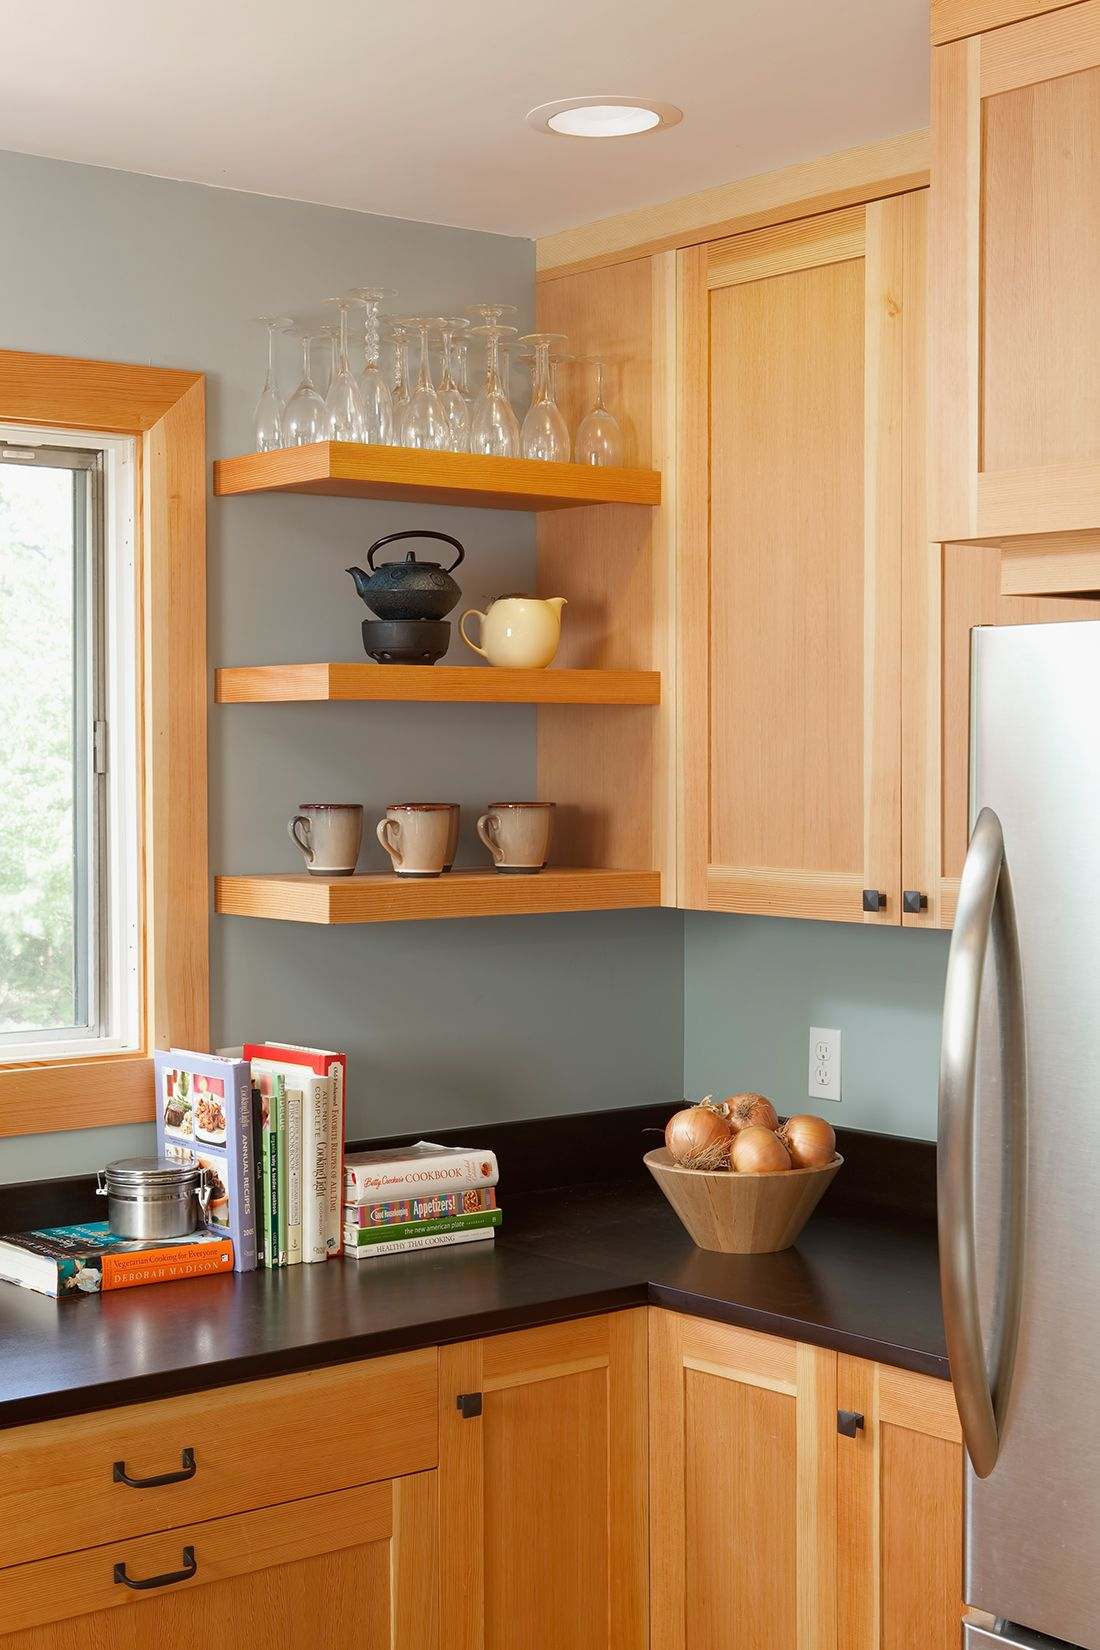 A 1950 S Home With All Original Finishes That Needed Upgrading Special Care Was Paid To Customizing T Kitchen Remodel Small Kitchen Decor Full Kitchen Remodel